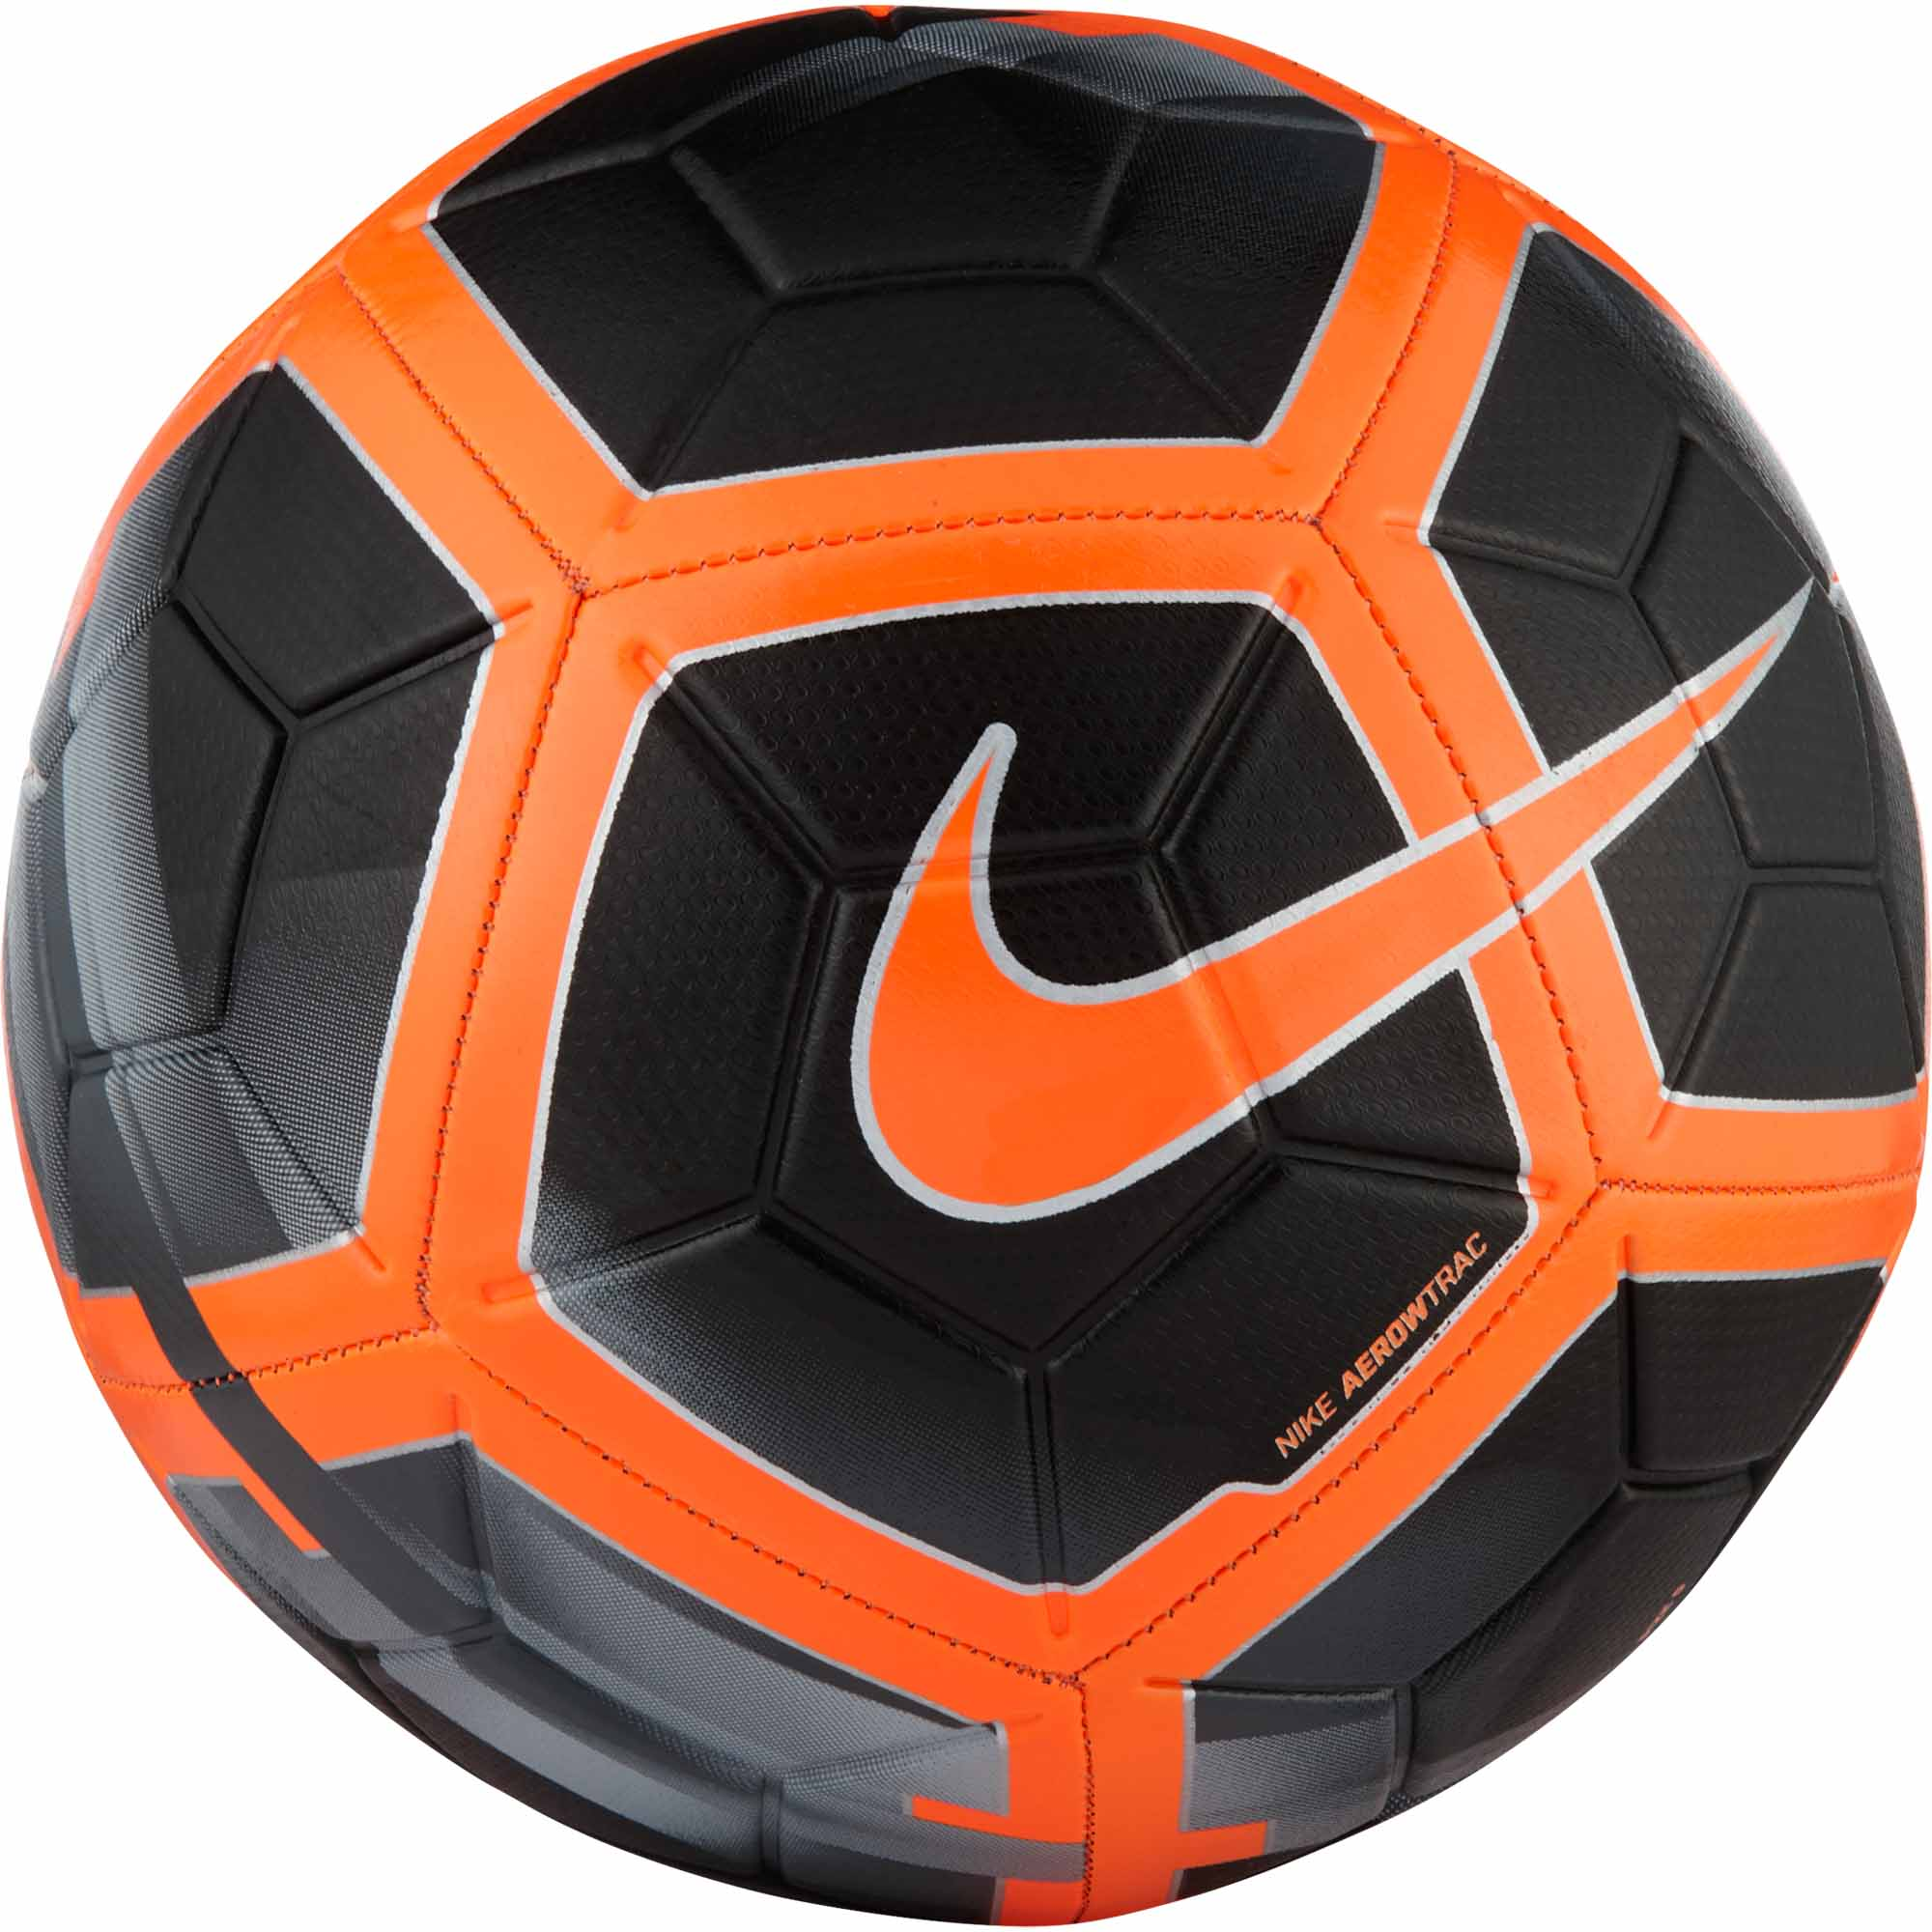 736708fb46c Nike Strike Soccer Ball - Black & Total Orange - Soccer Master